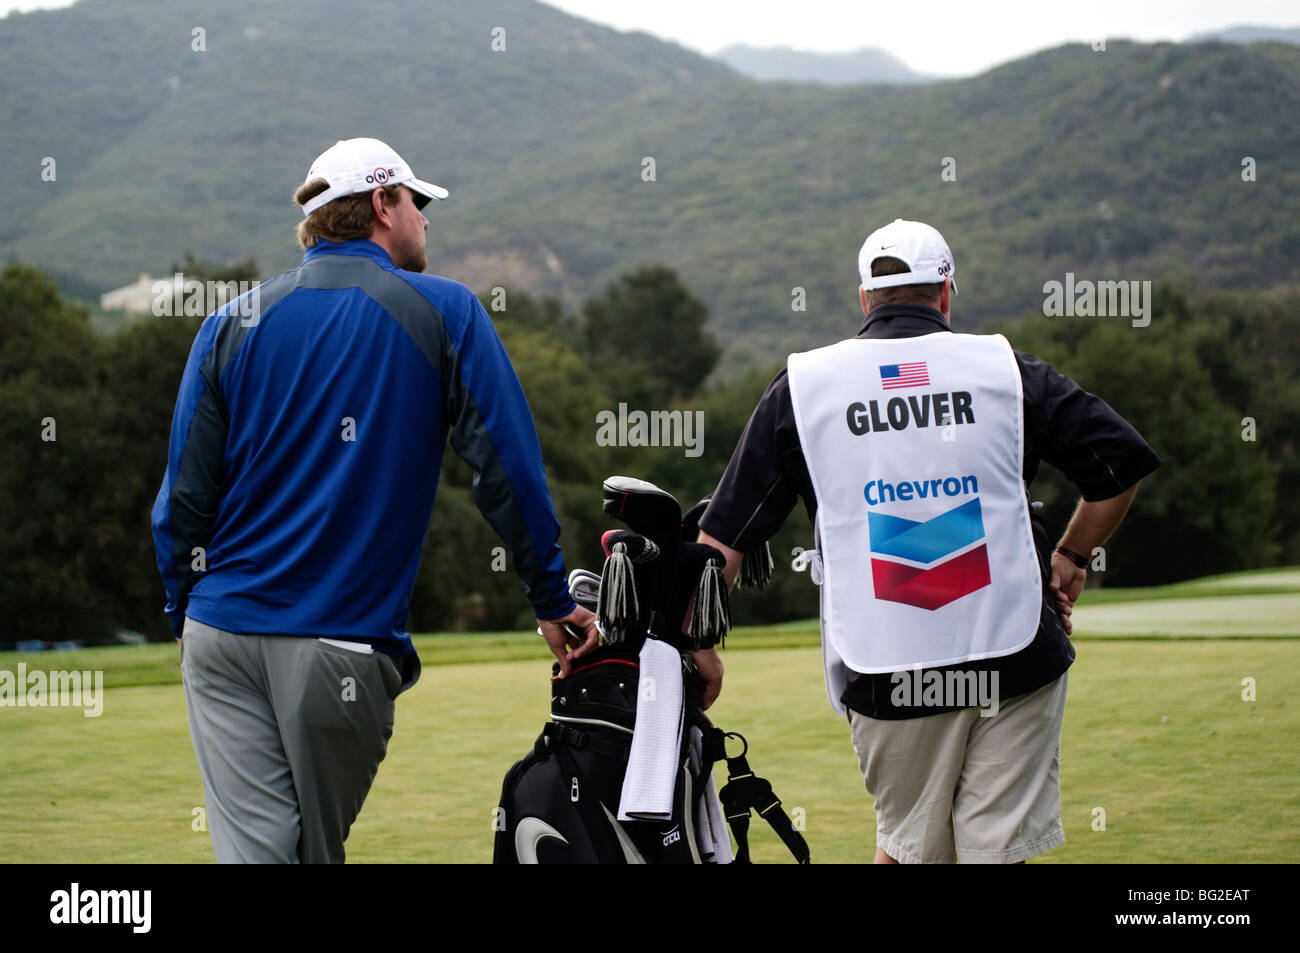 Lucas Glover stands with his caddy on the tee box during the Pro Am of the Chevron World Golf Challenge at Sherwood - Stock Image